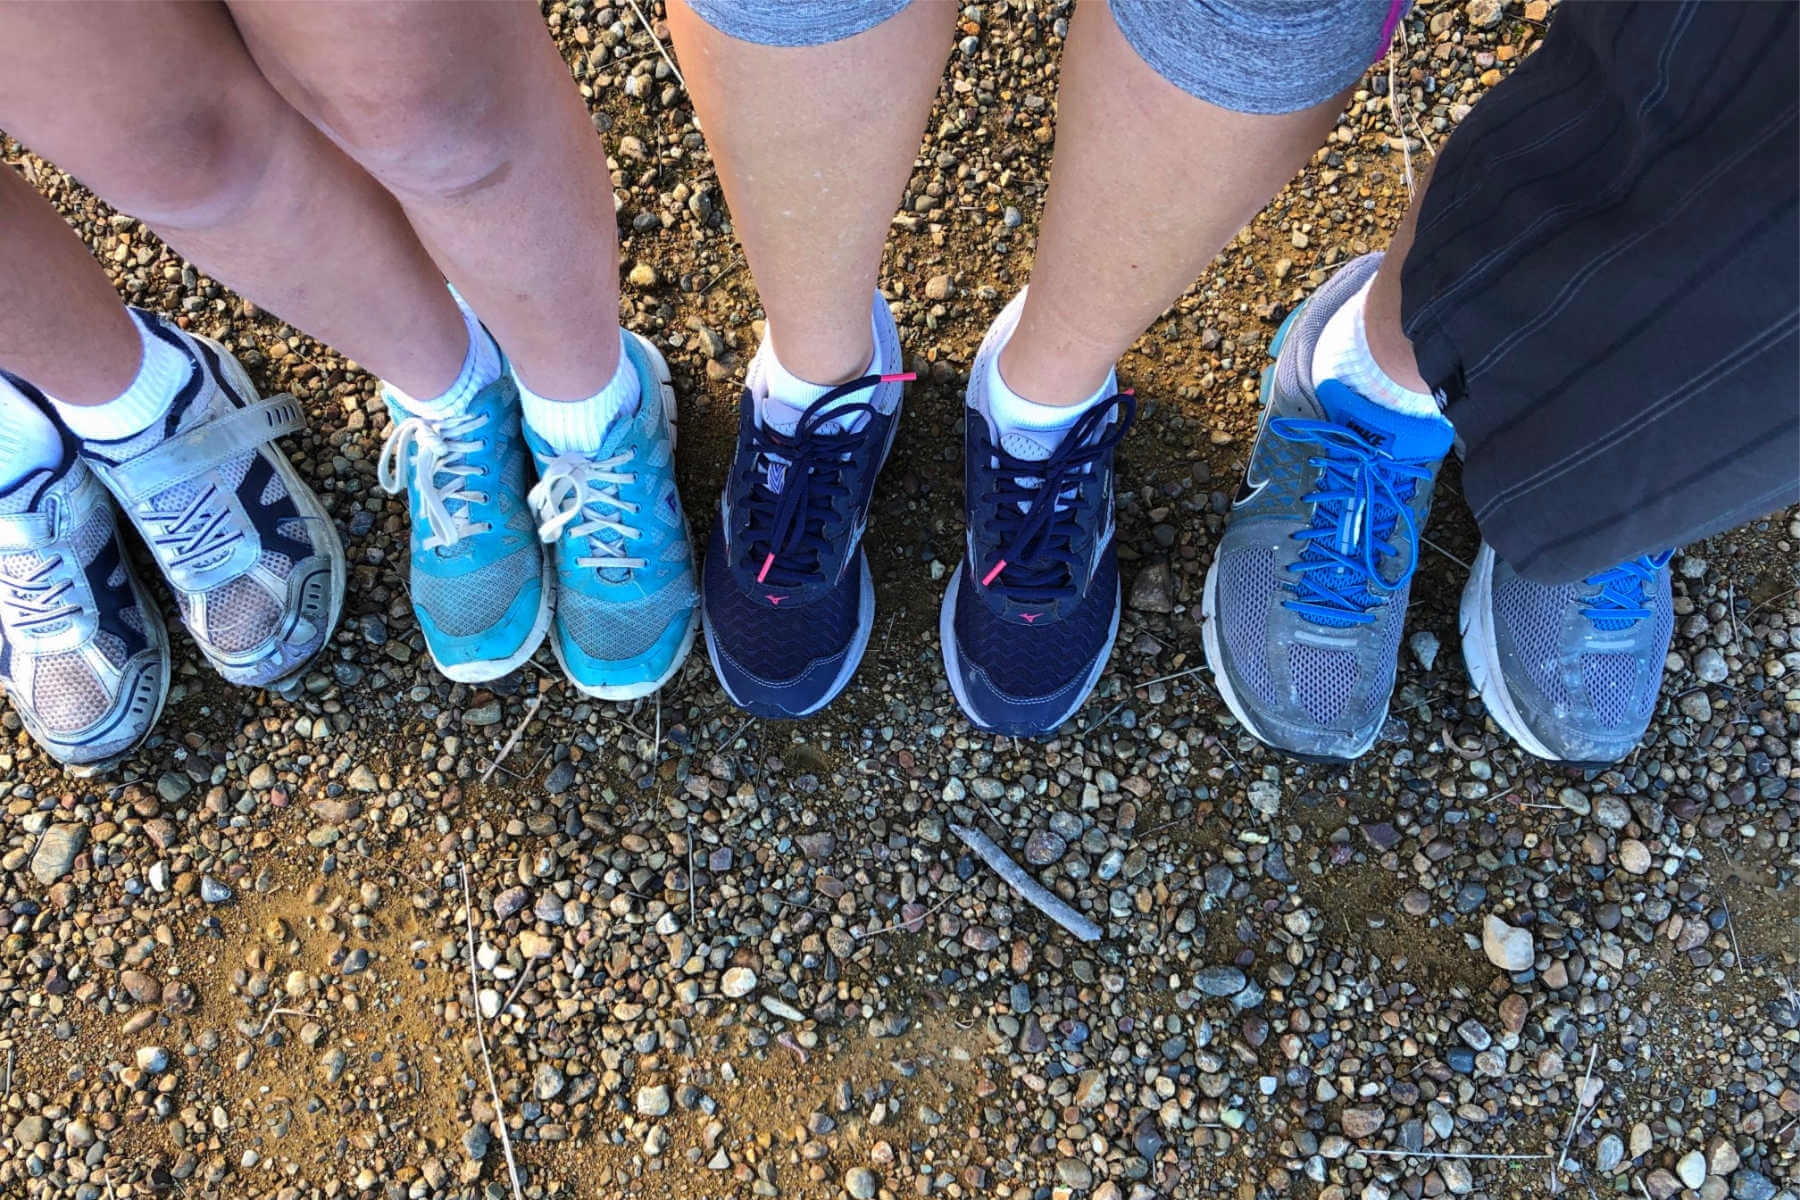 lake-macquarie-activities-family-feet